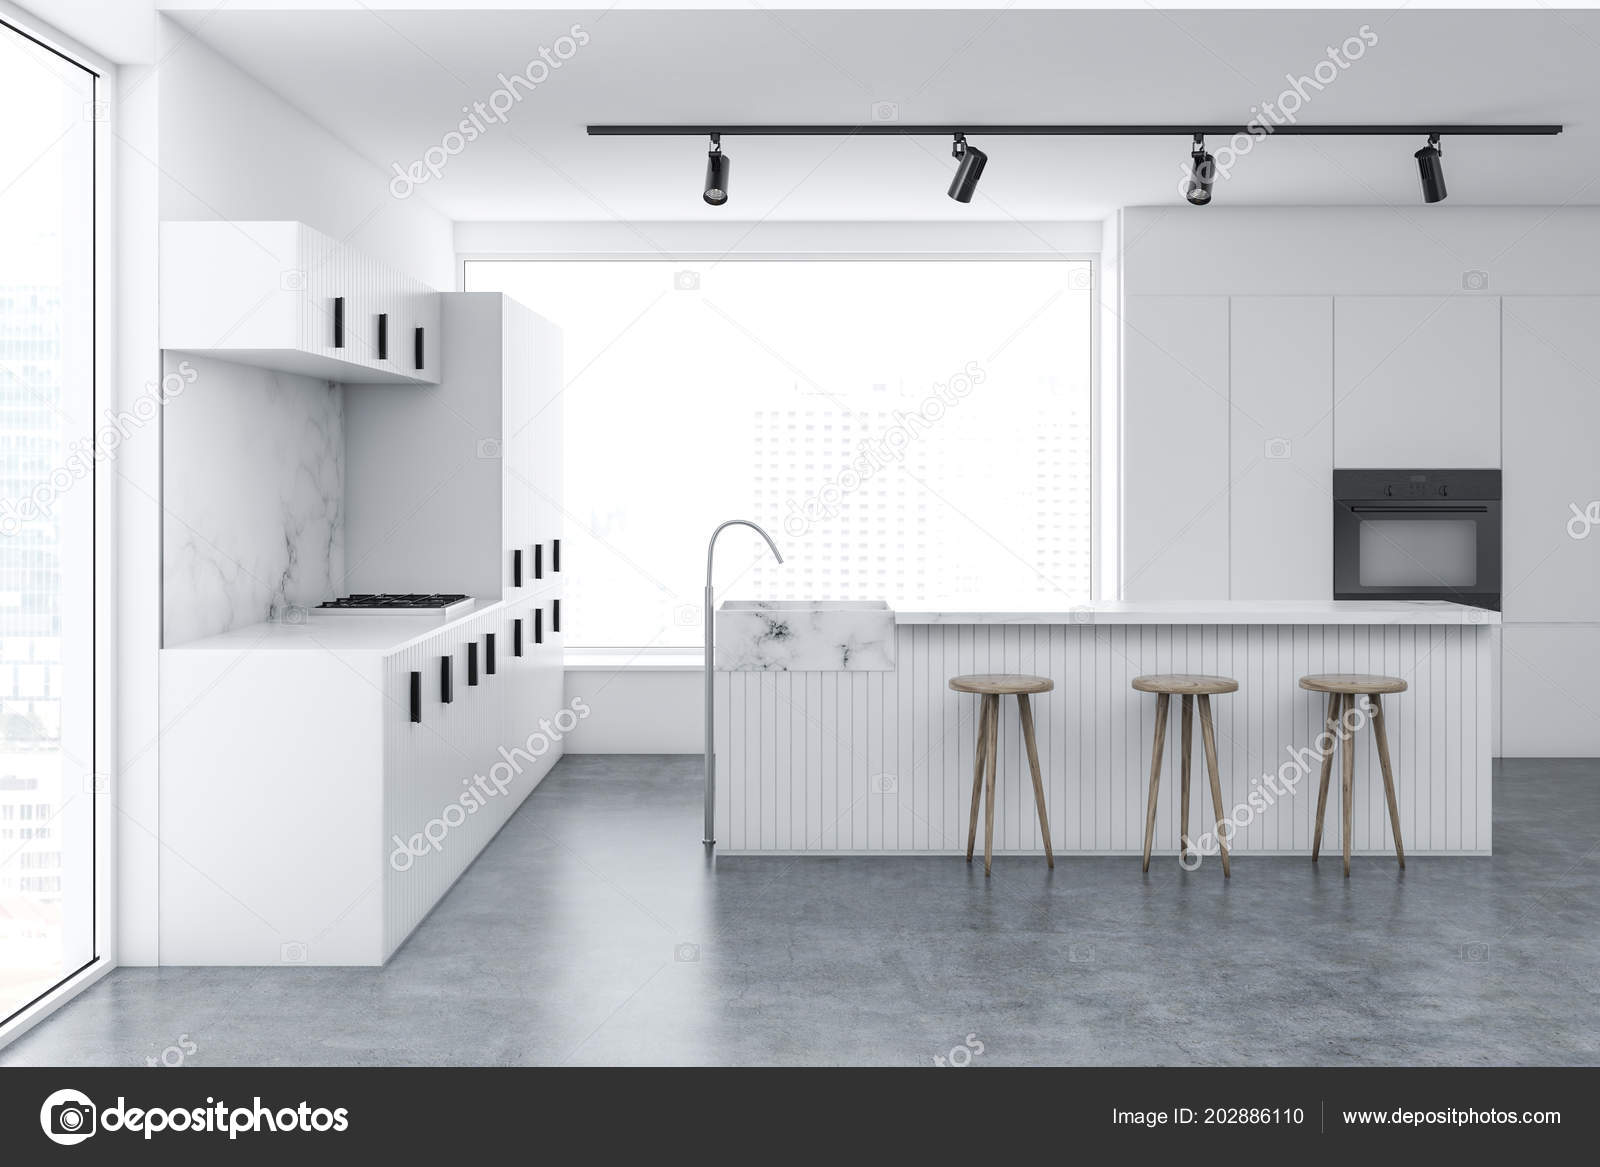 Loft Kitchen Interior White Marble Walls Concrete Floor White Bar Stock Photo C Denisismagilov 202886110